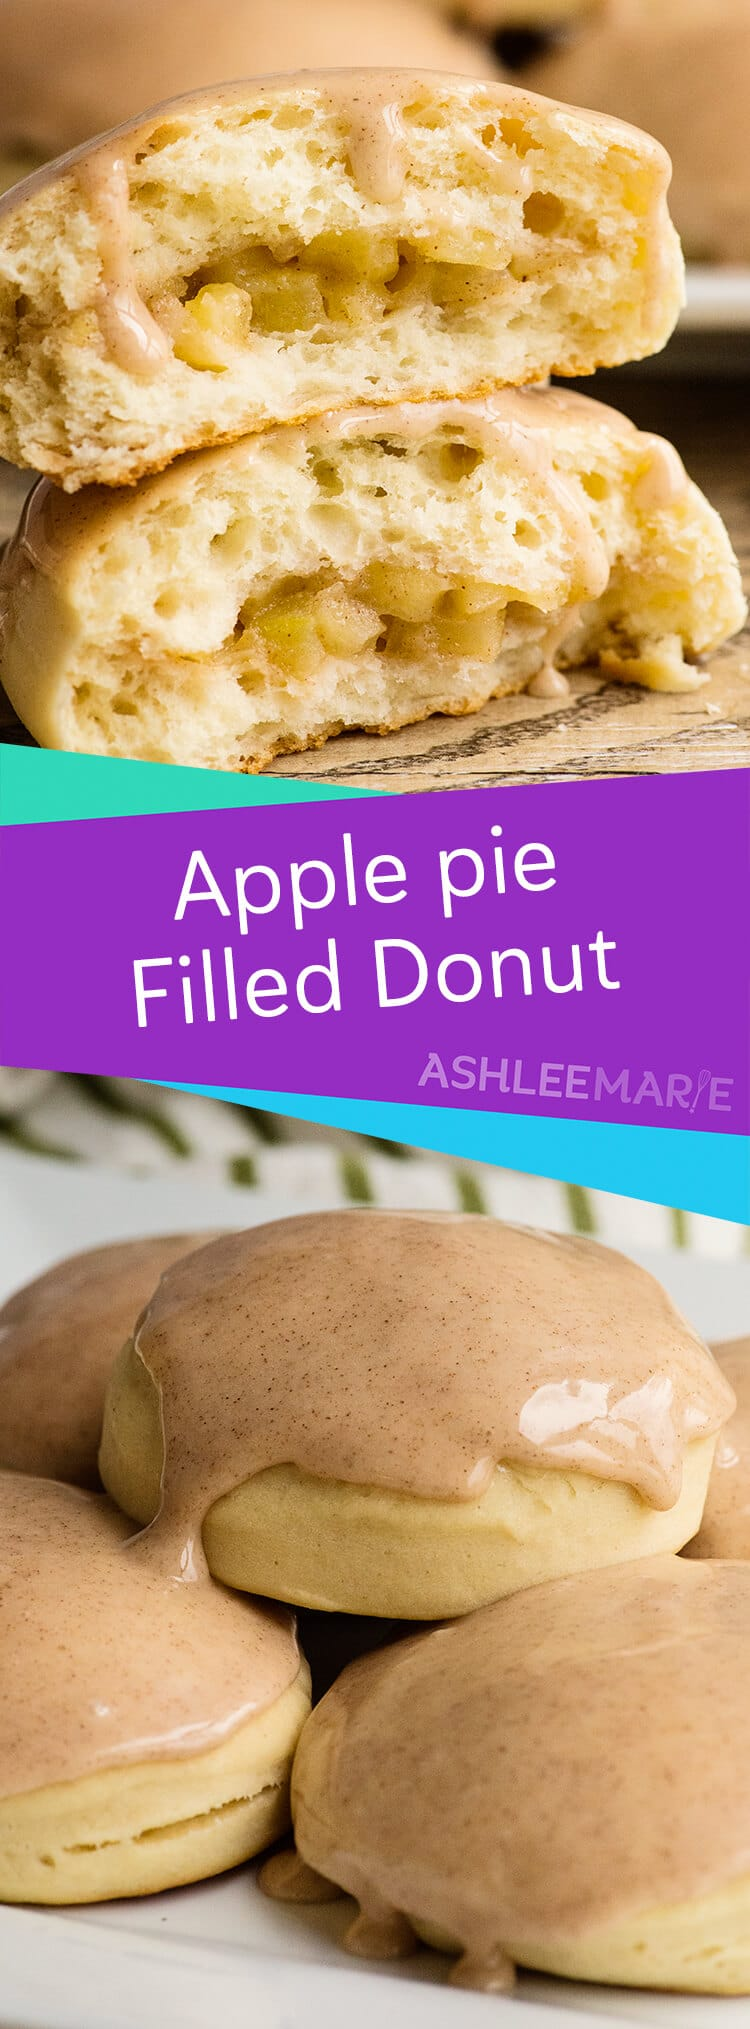 apple pie filled donut recipe